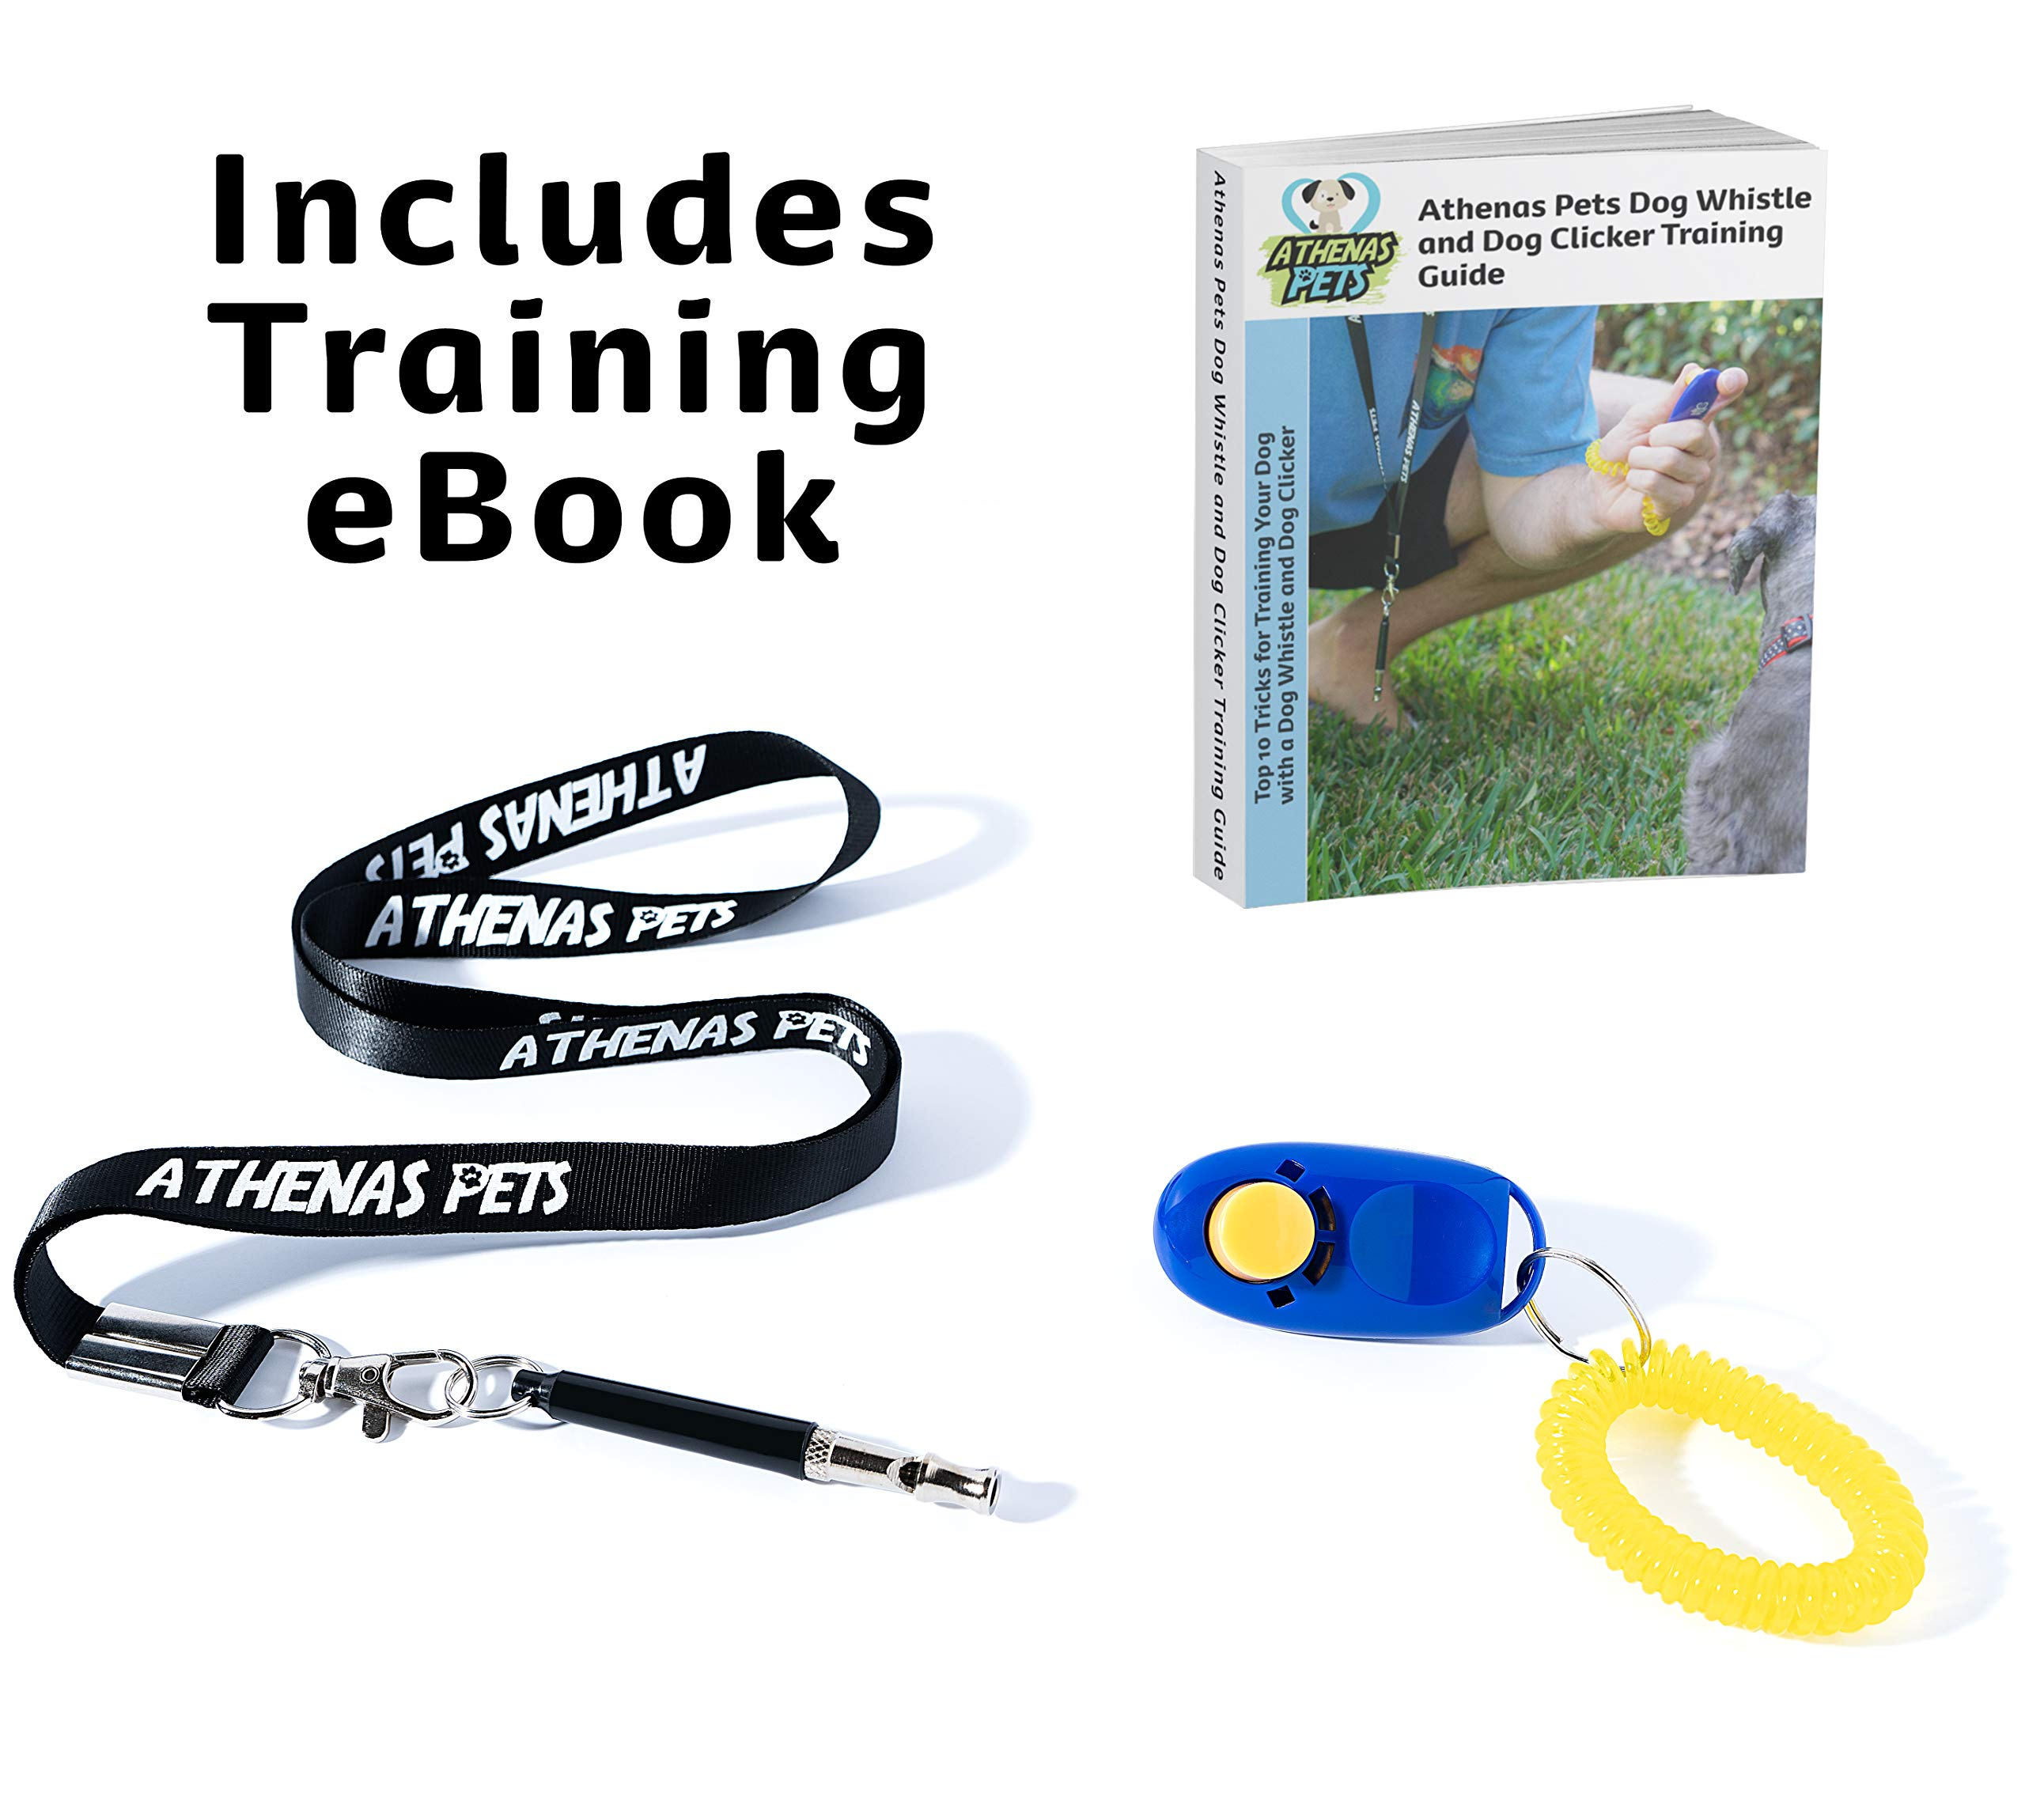 Athenas Pets Adjustable High Frequency Ultrasonic Dog Whistle to Stop Barking with Lanyard and Dog Clicker for Training - Includes Dog Training Whistle and Training Clicker Guide eBook by Athenas Pets